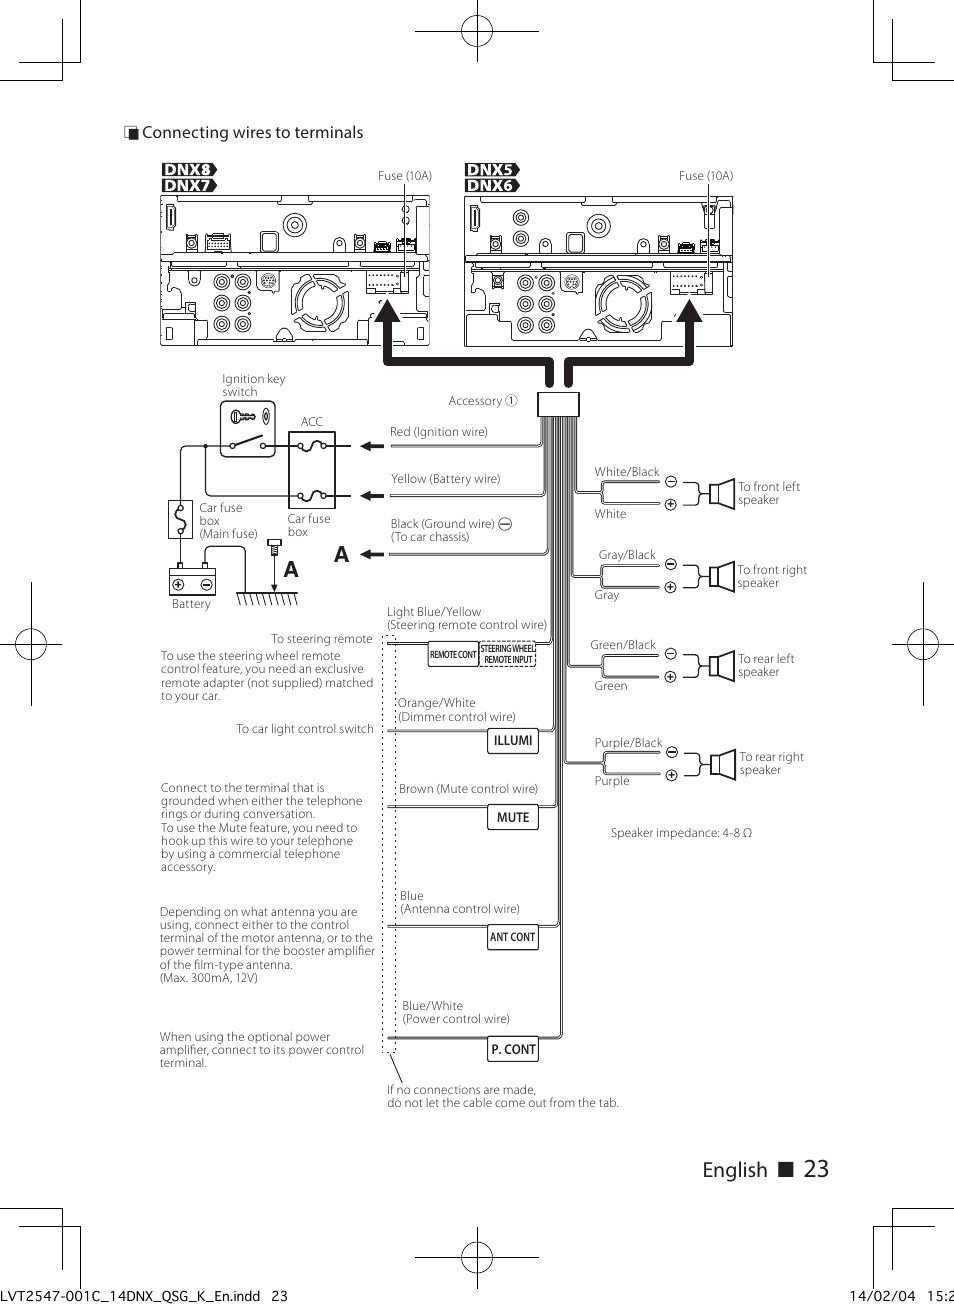 Kenwood Fxdb09mf2 Wiring Diagram